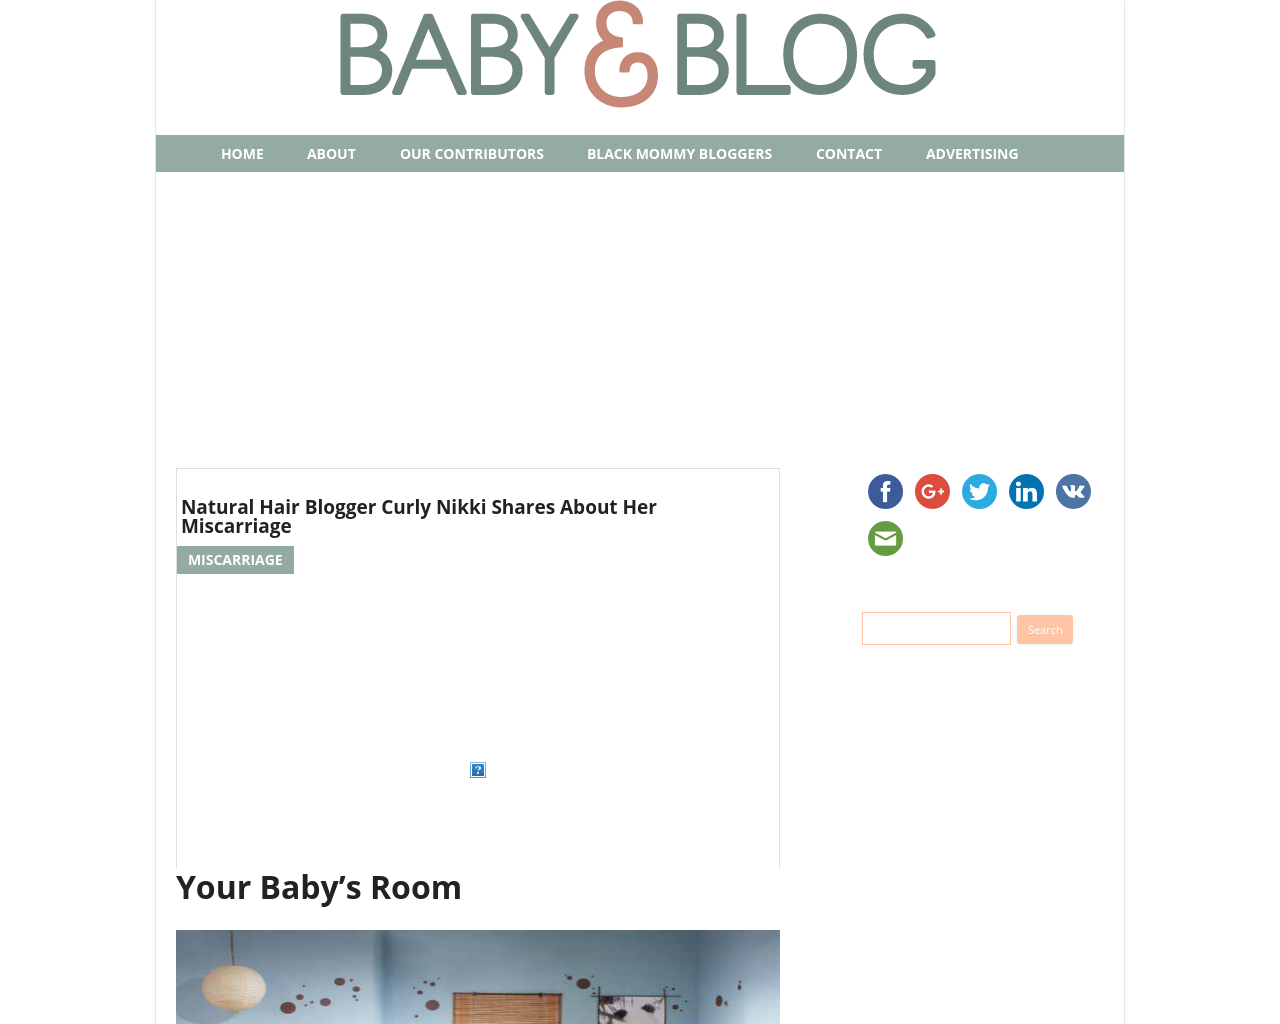 BABY-&-BLOG-Advertising-Reviews-Pricing